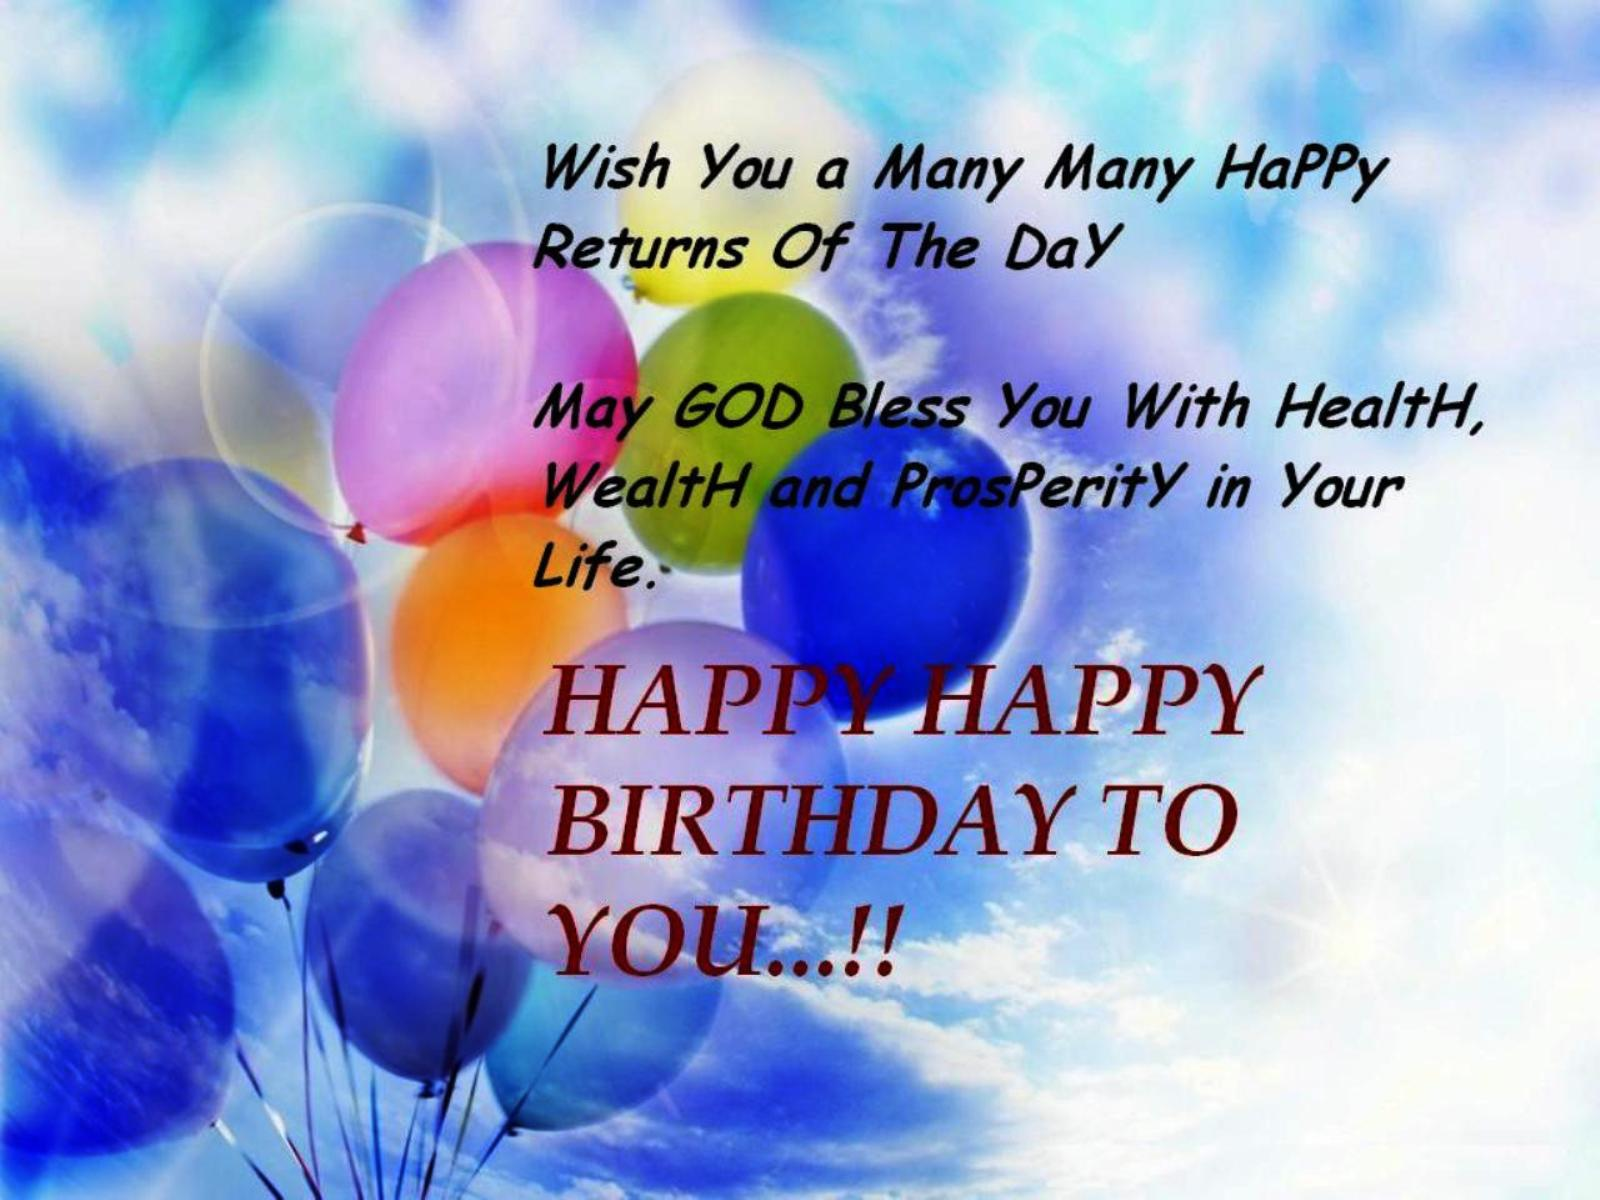 Happy Birthday Wishes Quotes - Birthday Wishes, Greetings